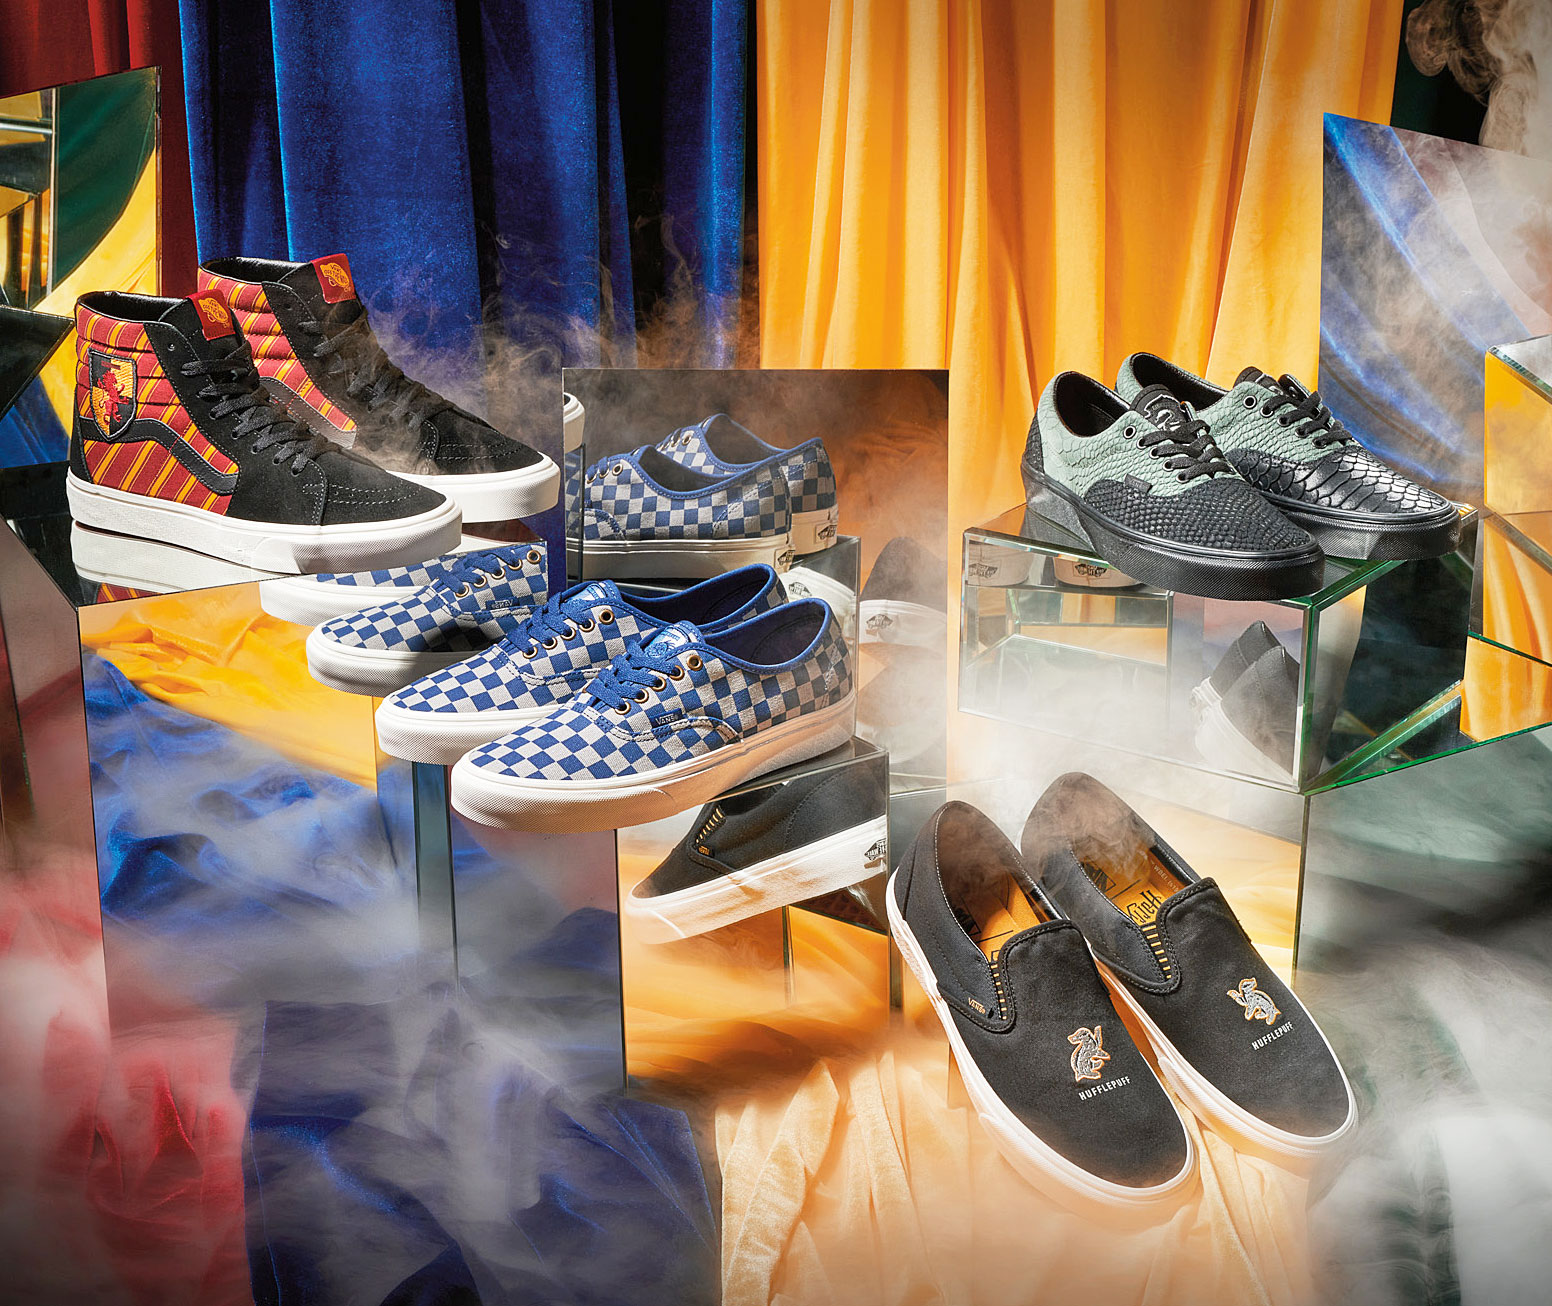 Vans Just Released a Line of 'Harry Potter' Inspired Sneakers